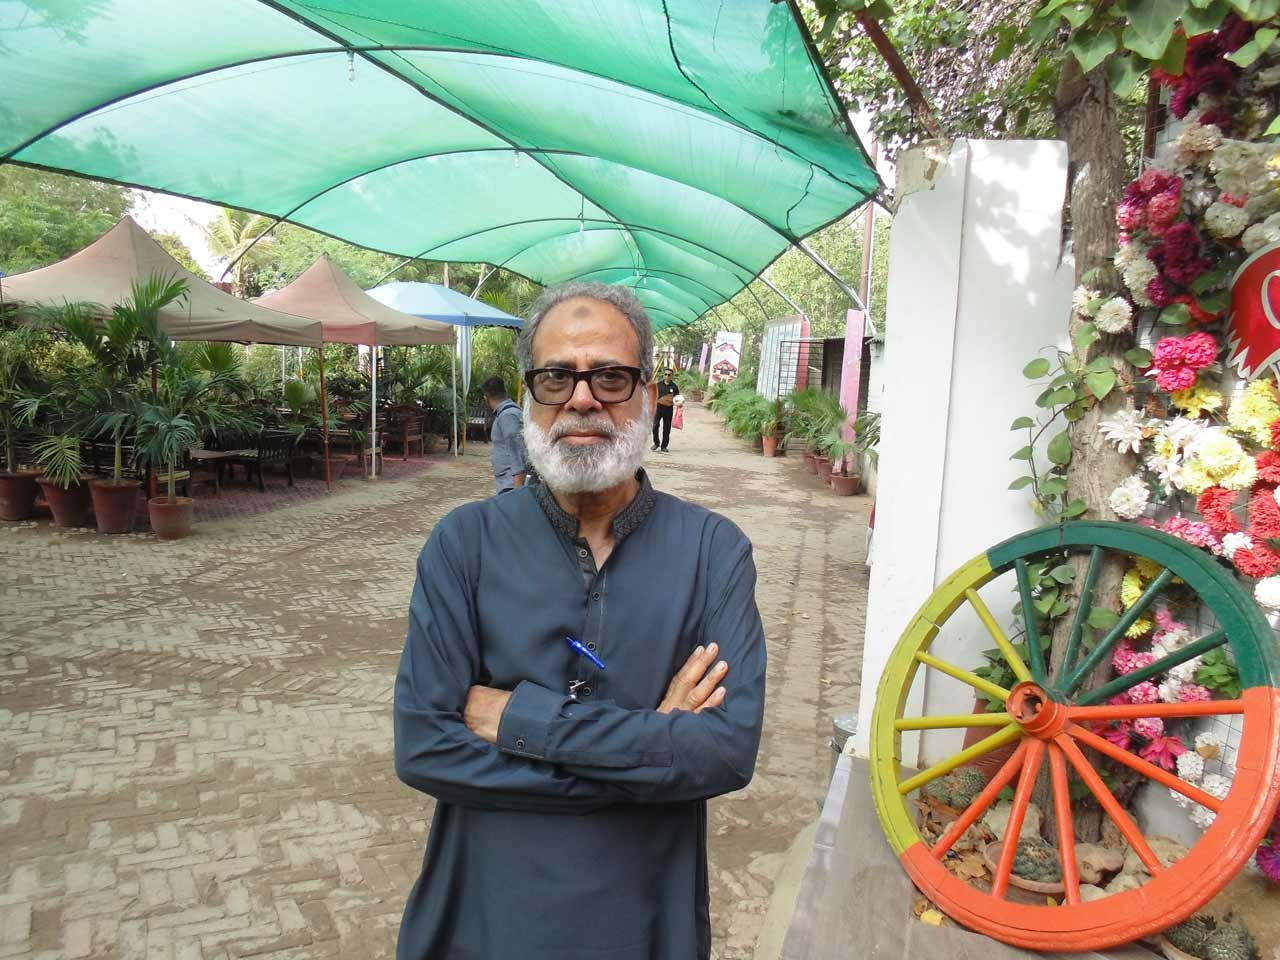 Syed Shahid Ali at the Farm House